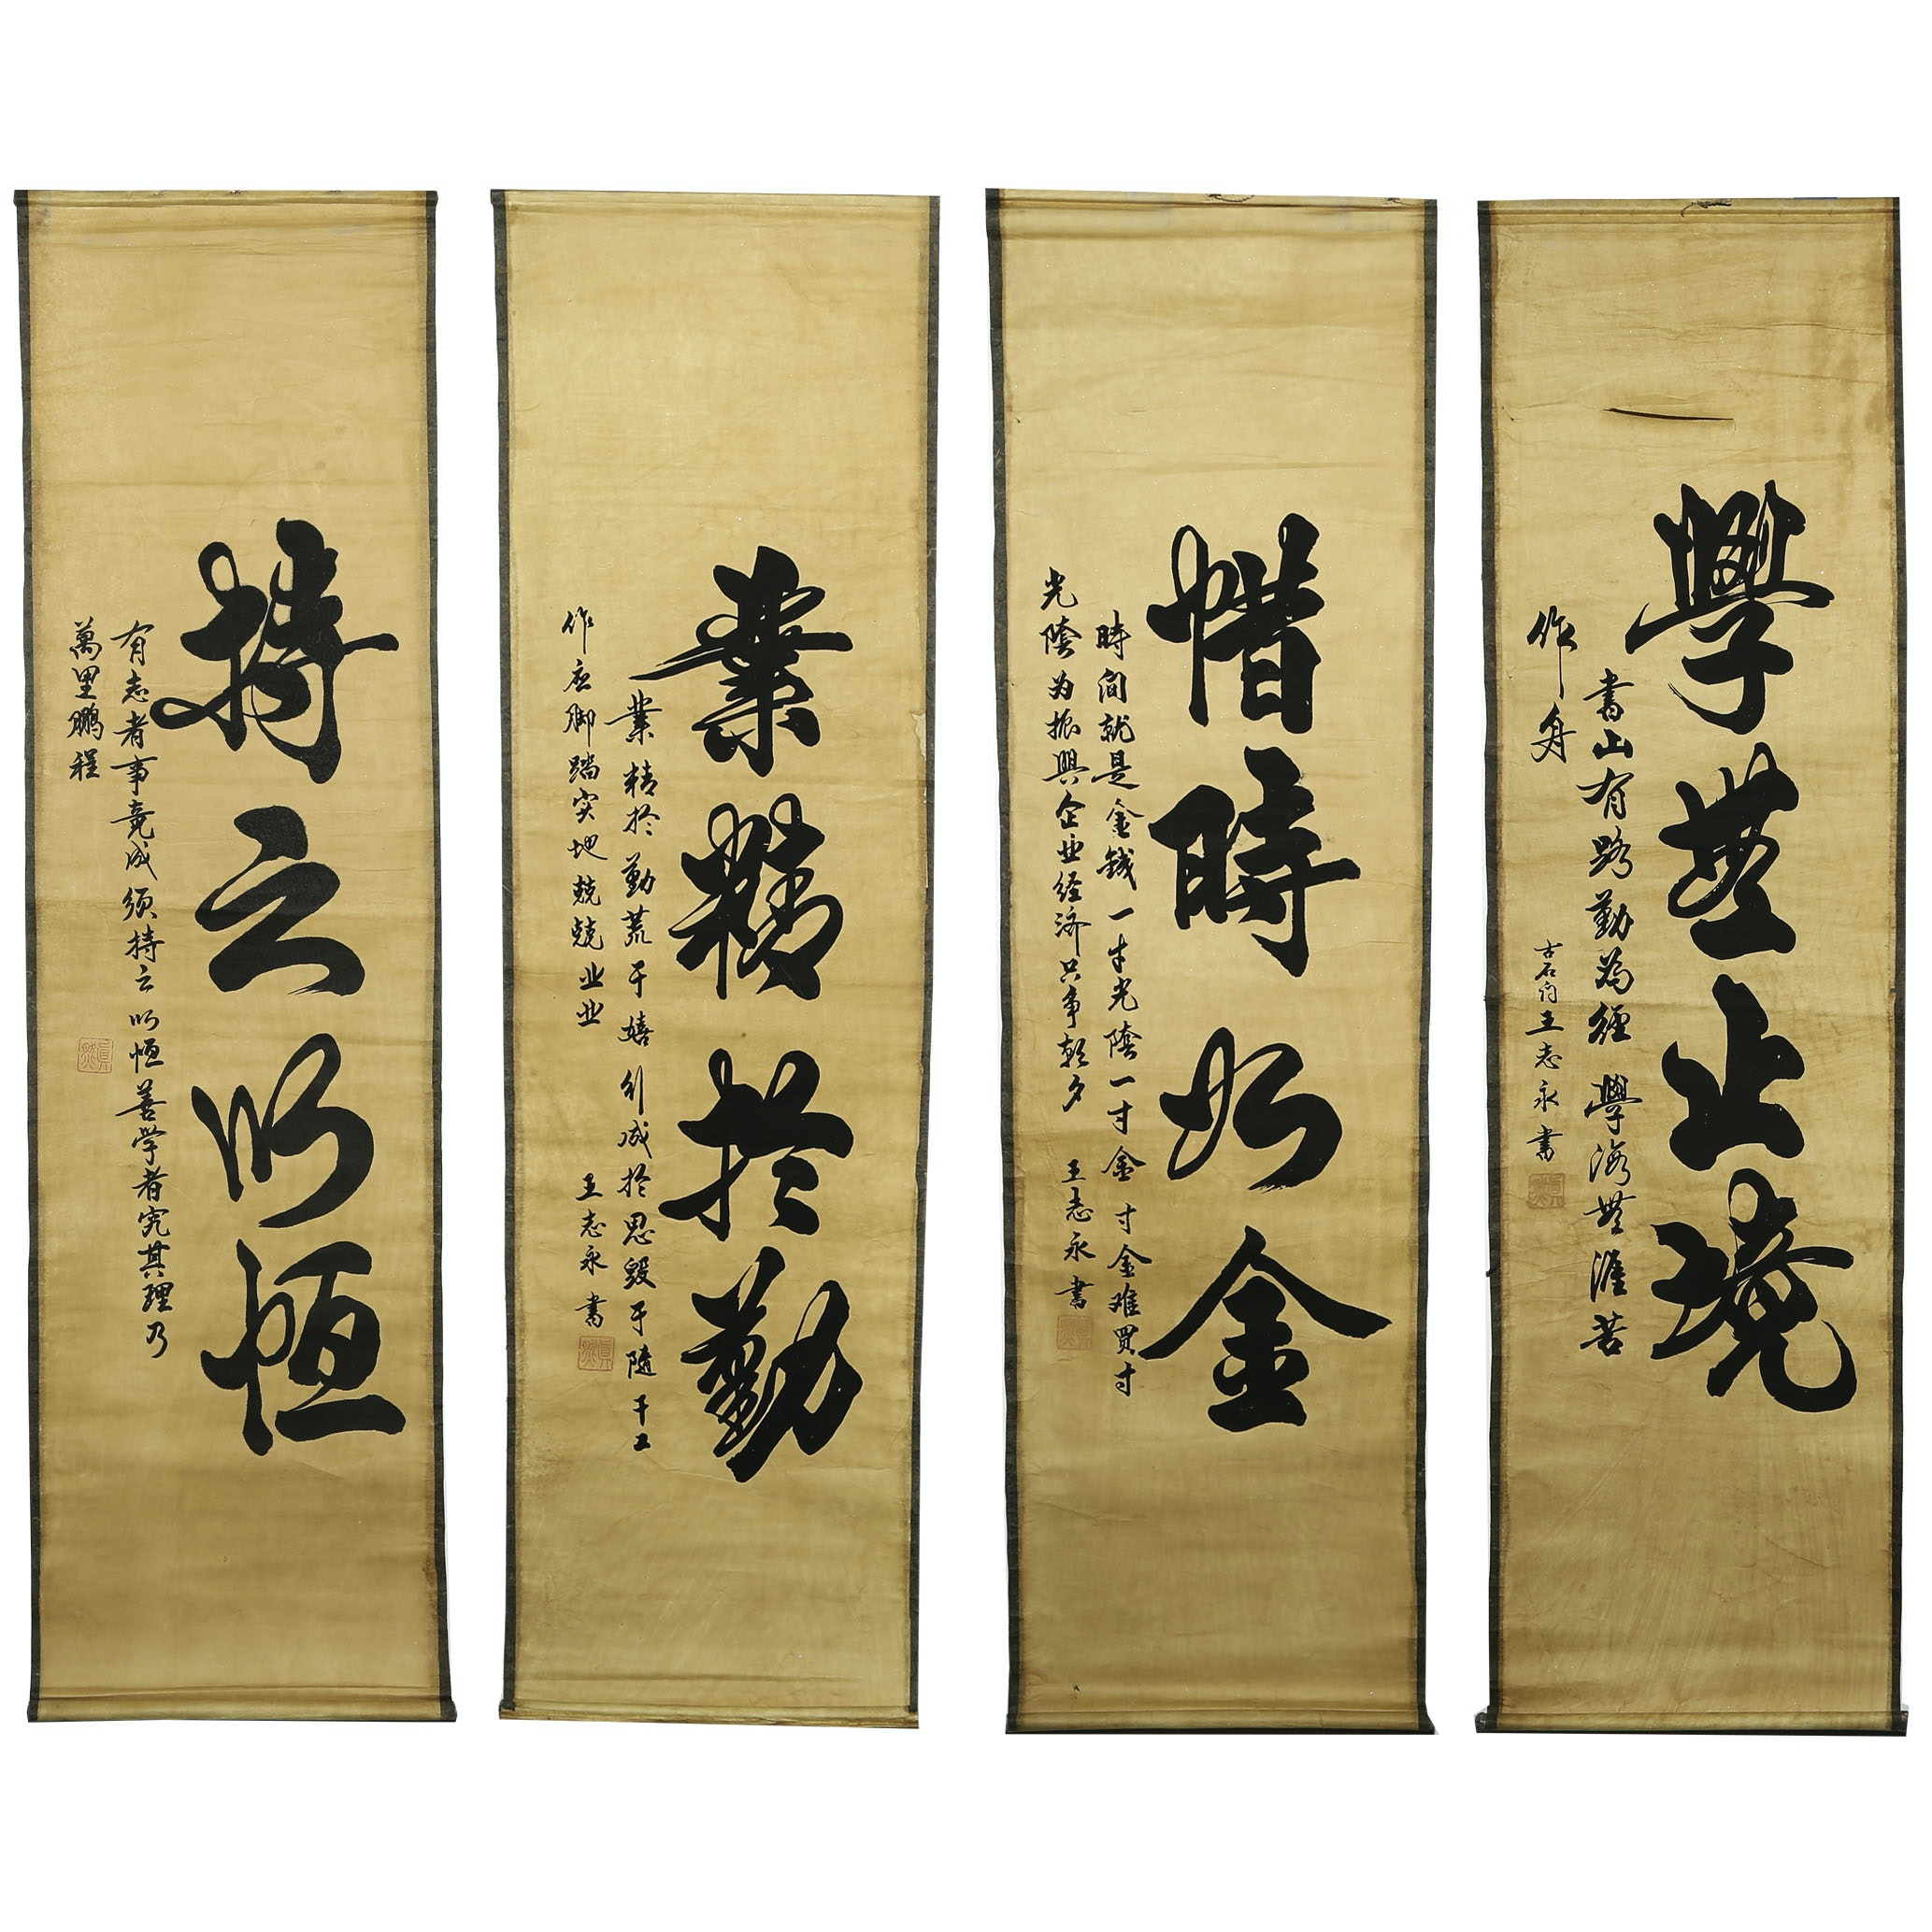 Vintage Chinese Calligraphy on Paper Hanging Scrolls